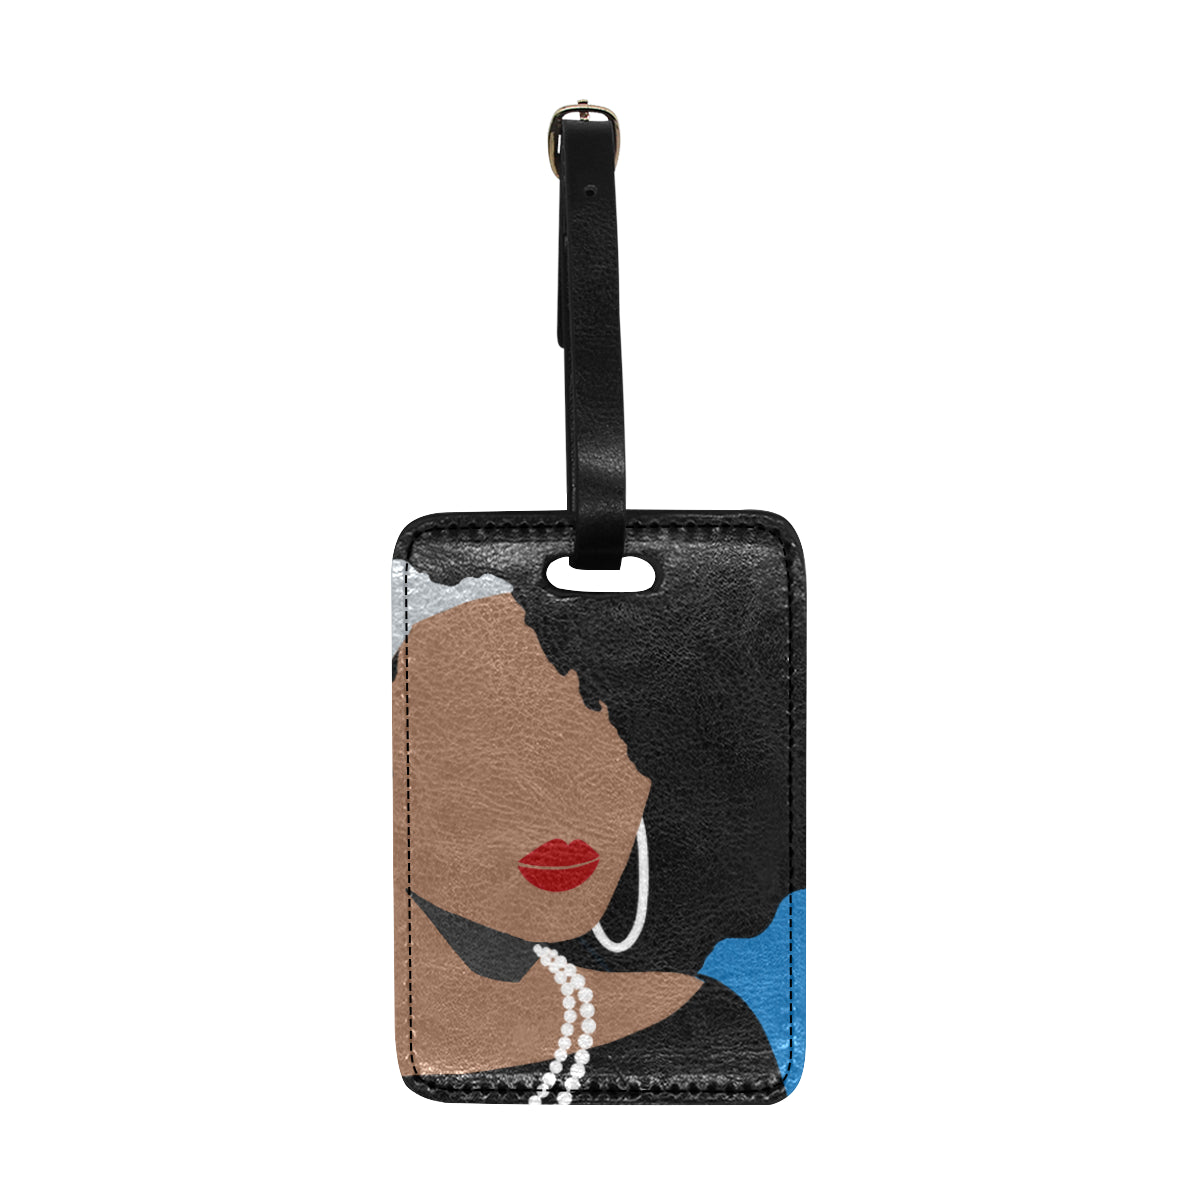 Bougie Chloe 1867 Luggage Tag